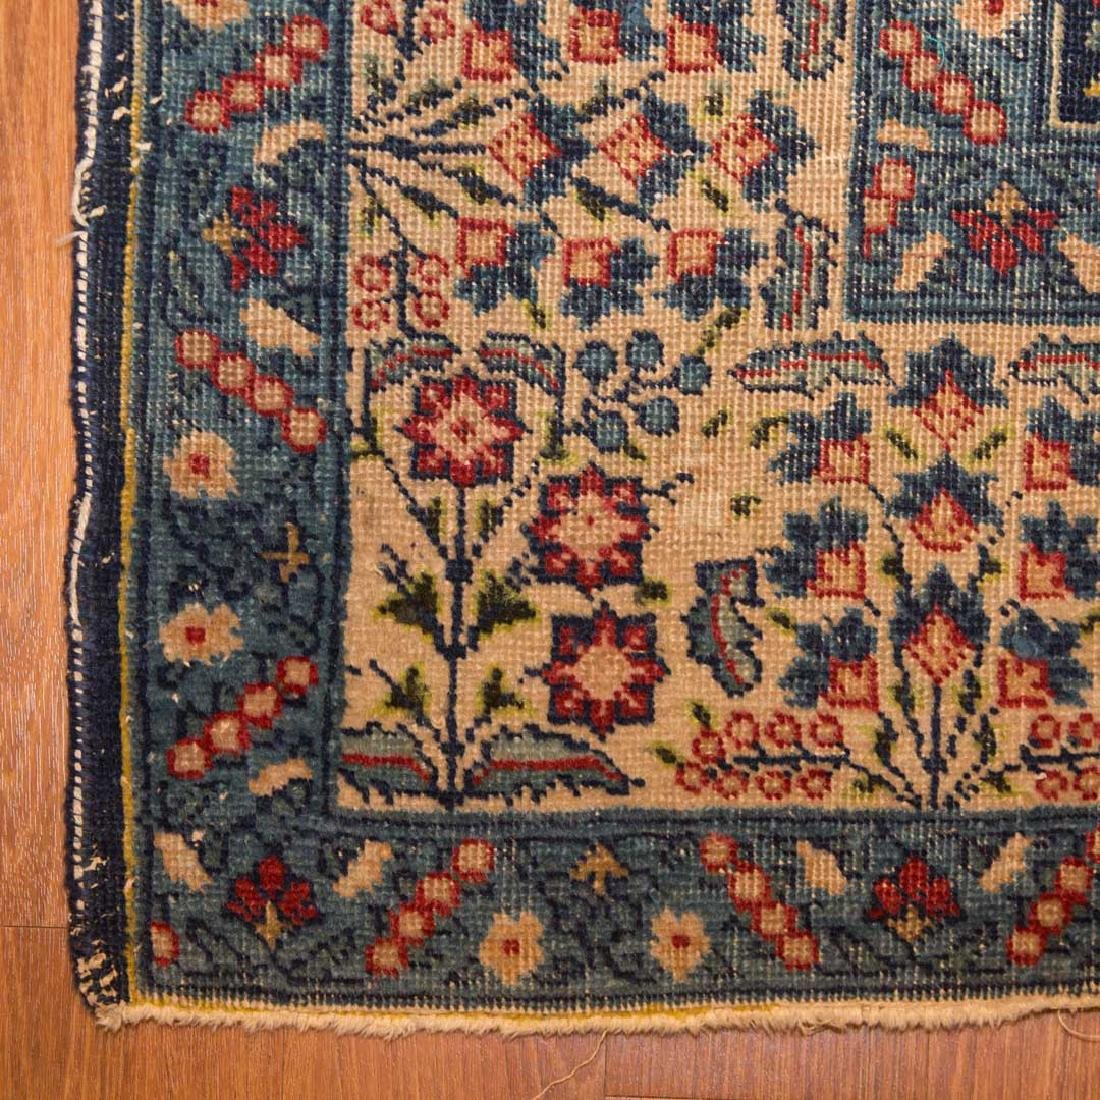 Turkish Floral rug, approx. 5.6 x 8.6 - 2